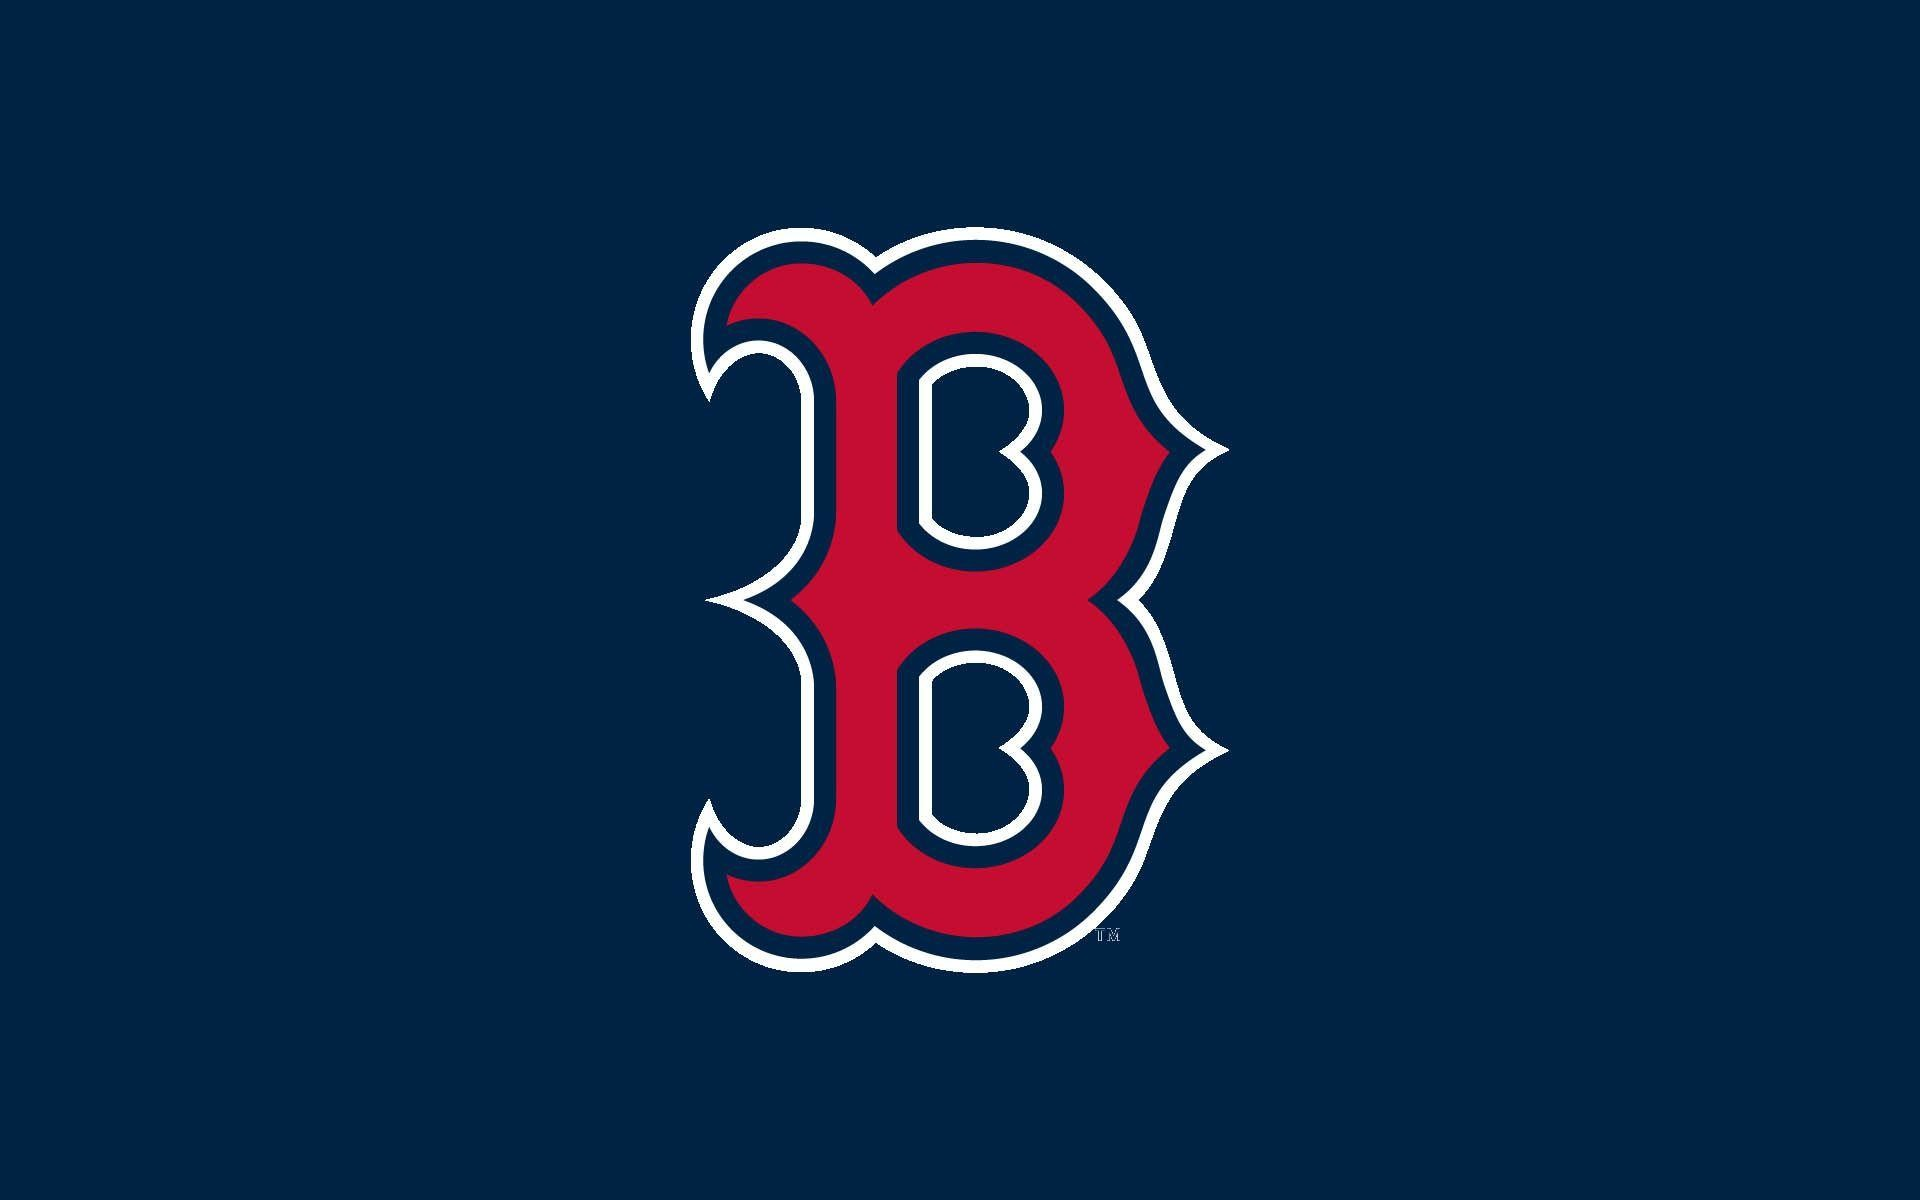 Red Sox Wallpaper for iPhone 68 images 1920x1200